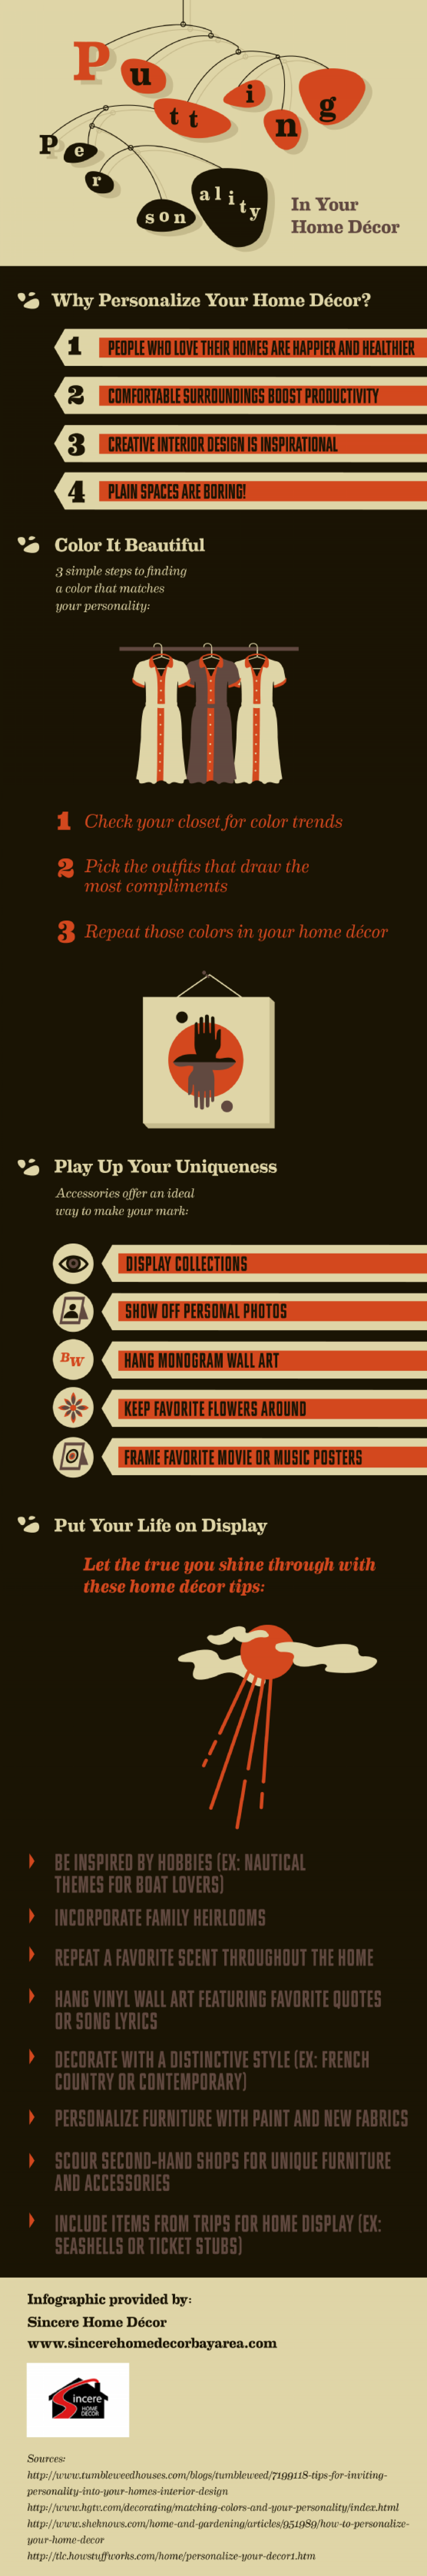 Putting Personality in Your Home Décor Infographic